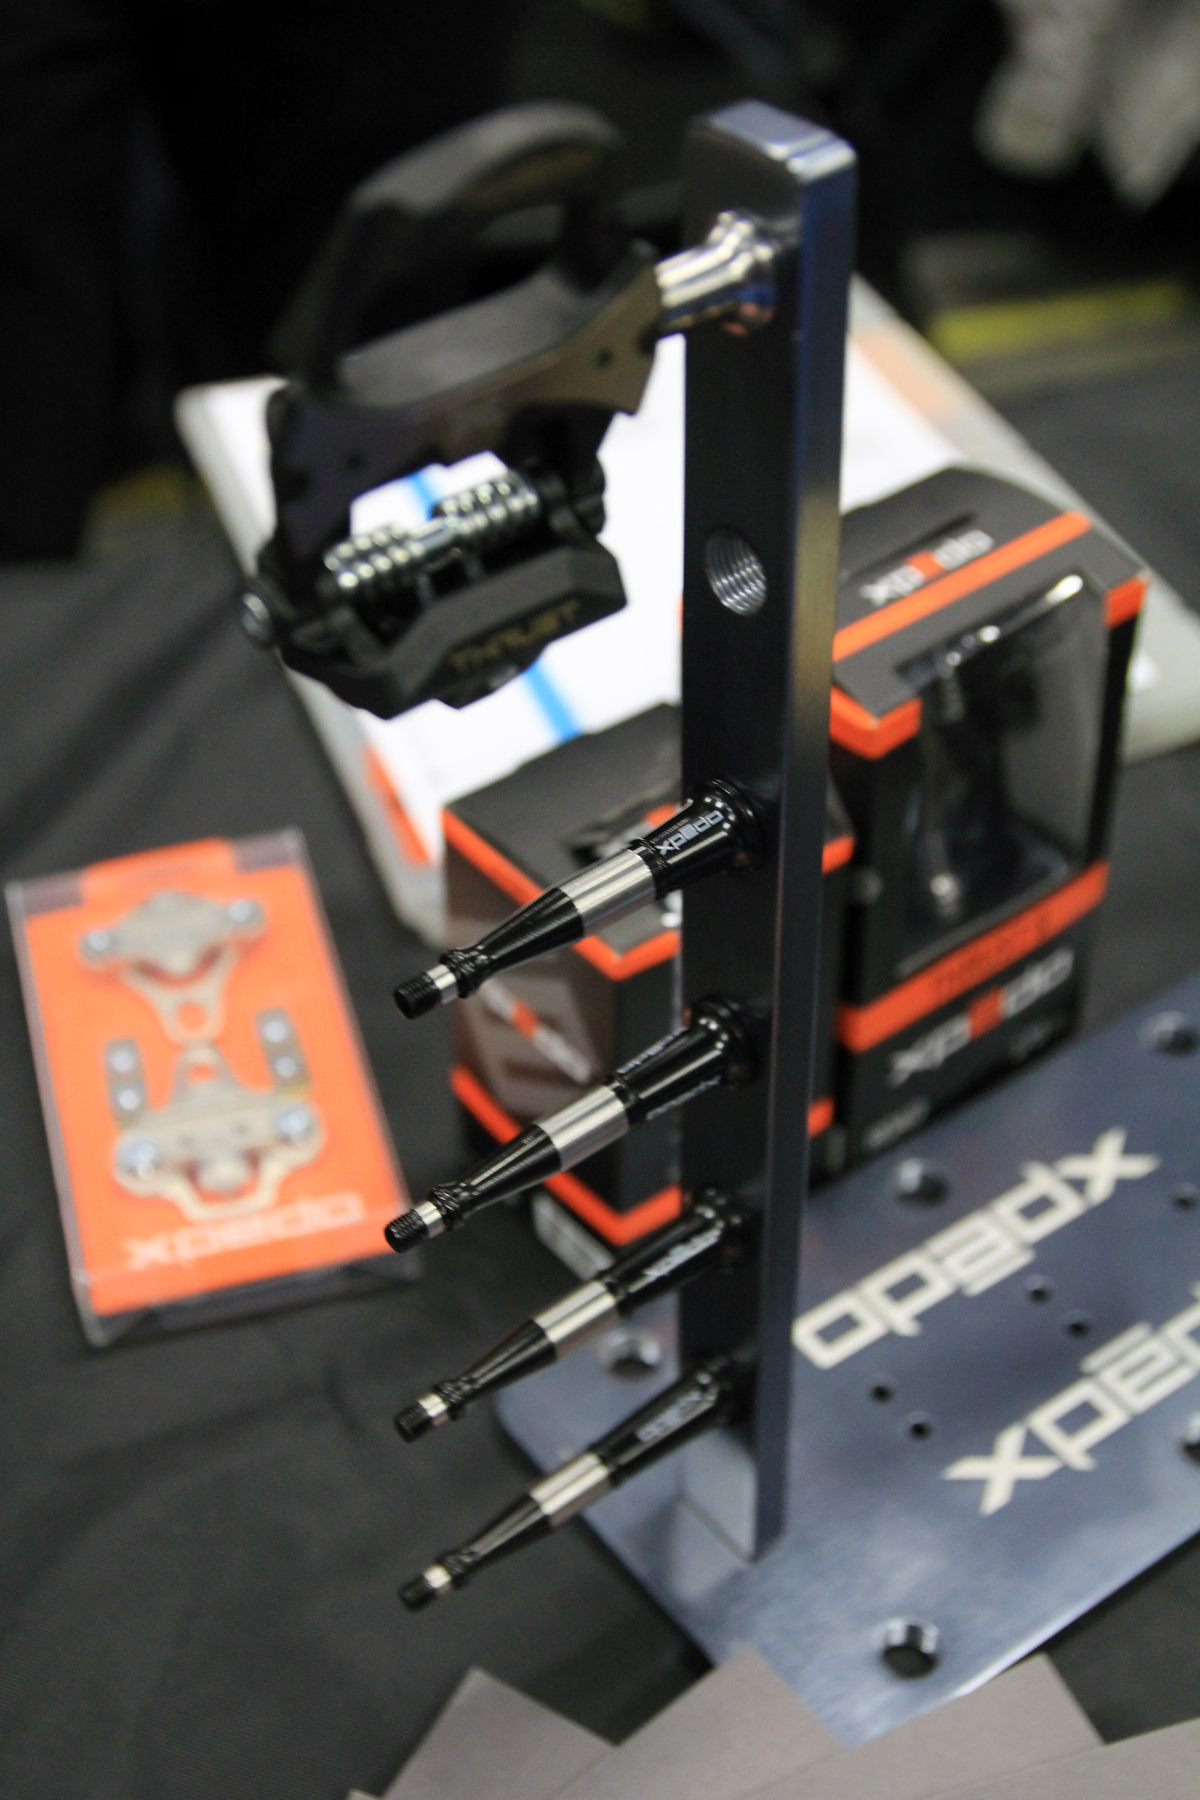 Frostbike: xpedo Shows new Jek Platform Pedals, Varying Spindles for Thrust 8s